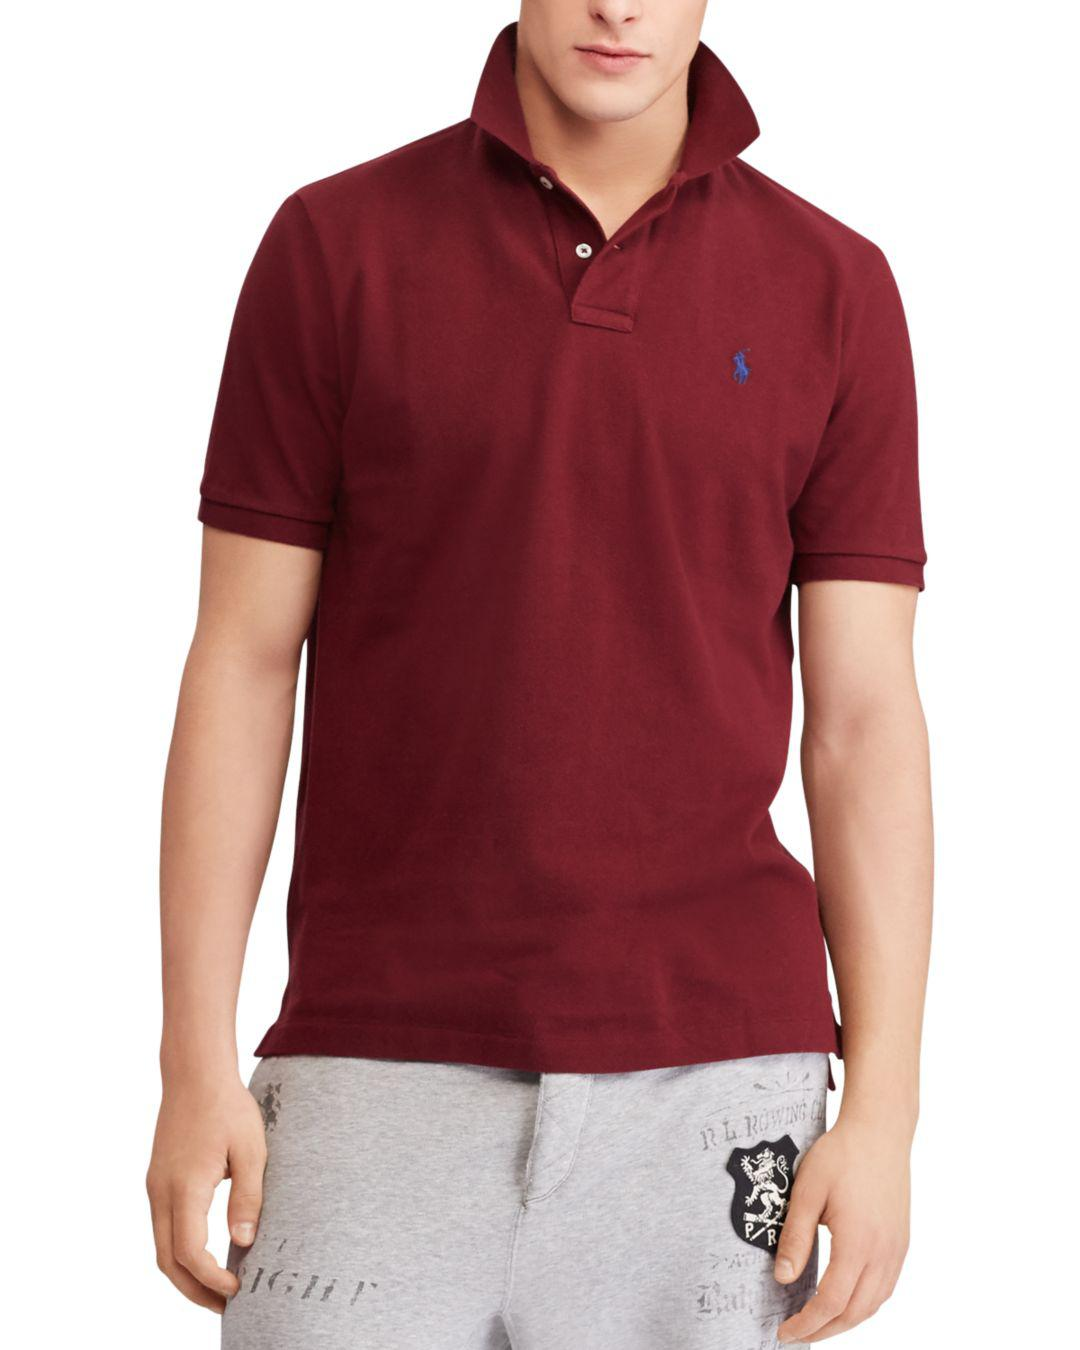 9566cd6f Lyst - Polo Ralph Lauren Polo Classic Fit Mesh Polo Shirt in Red for Men